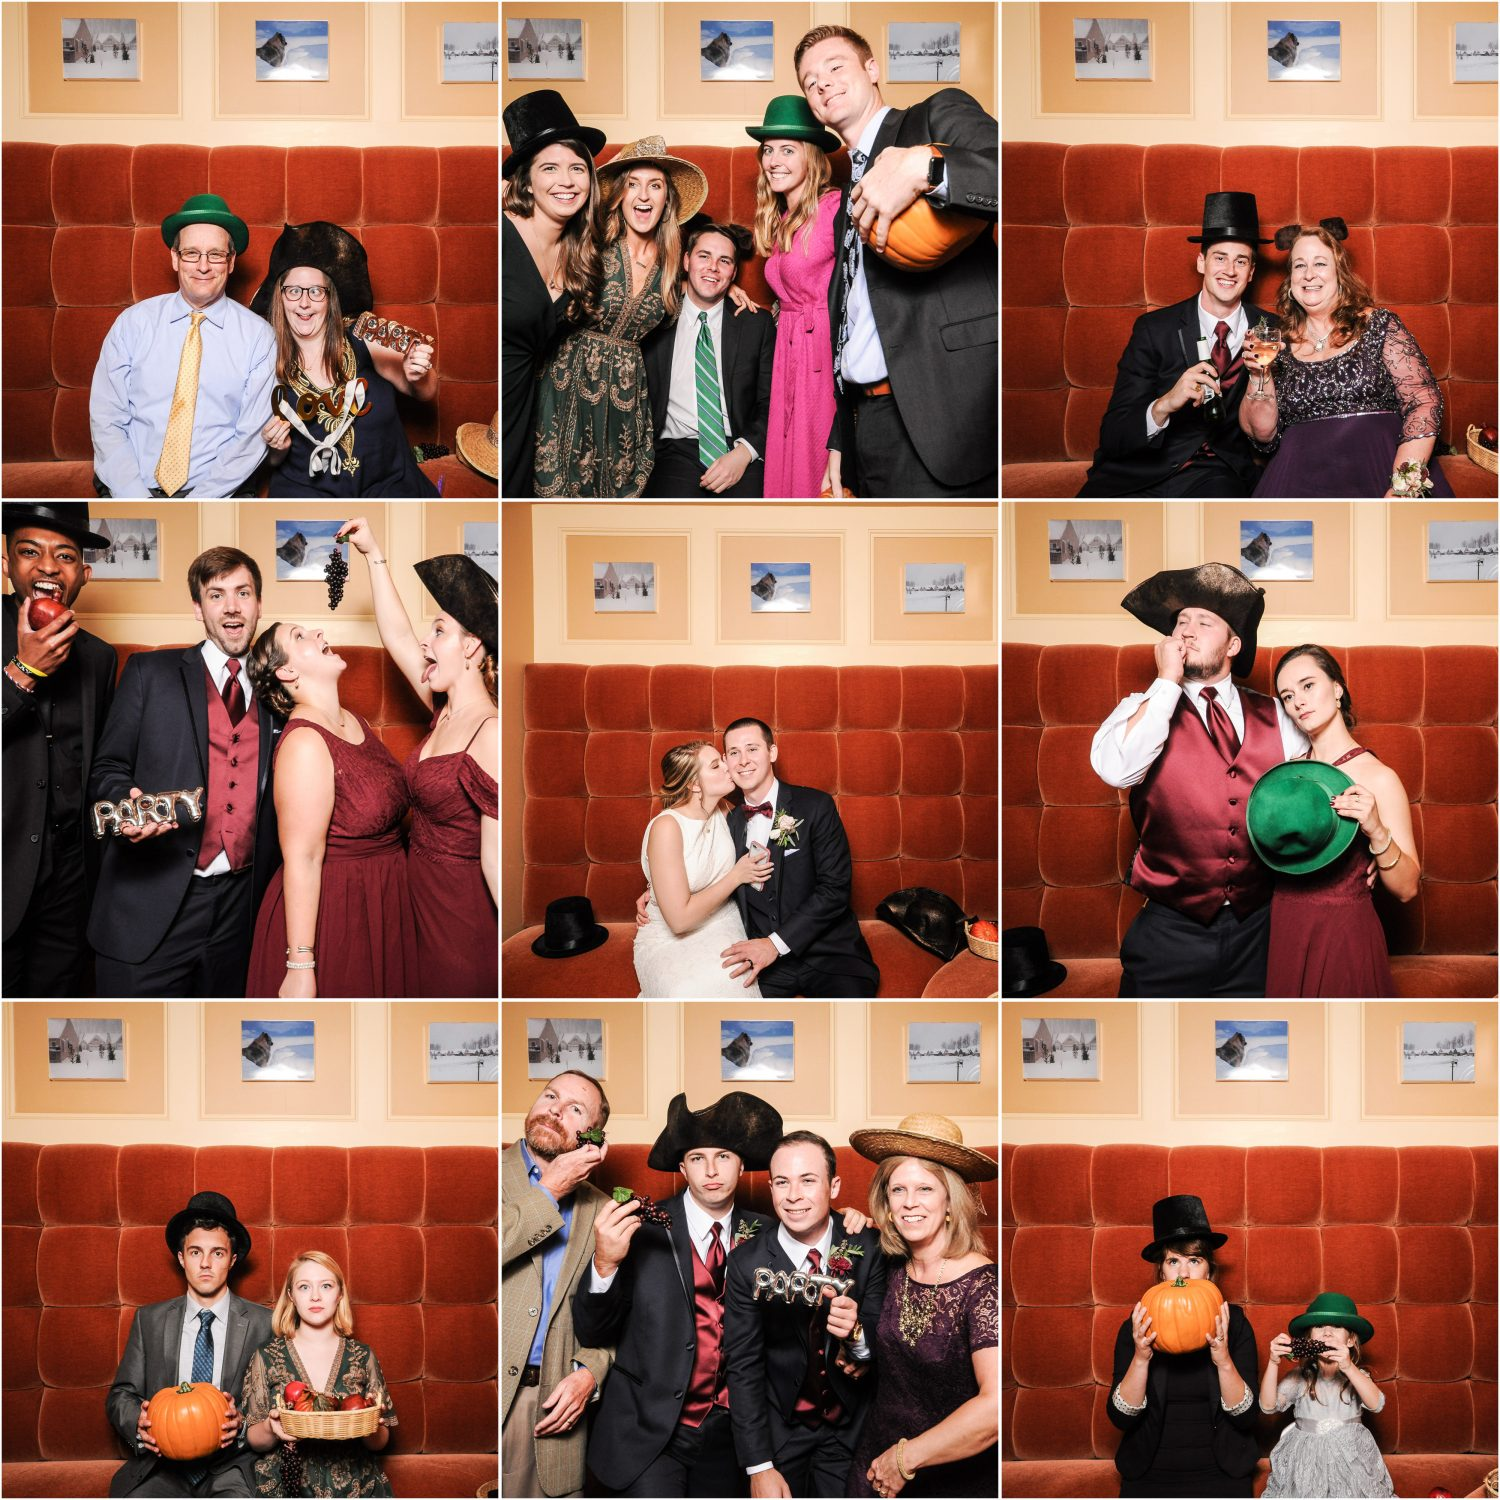 Virginia Wedding Photobooth